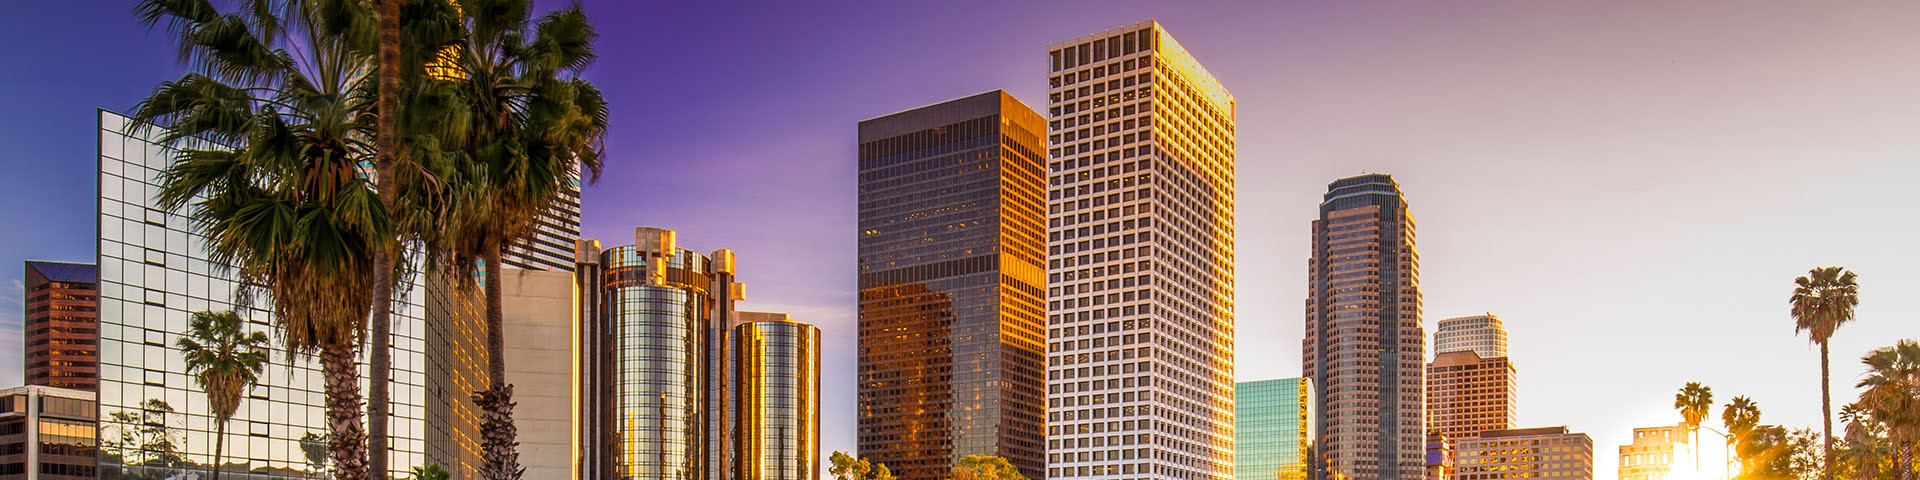 NASIS Commercial Real Estate Investments DTLA